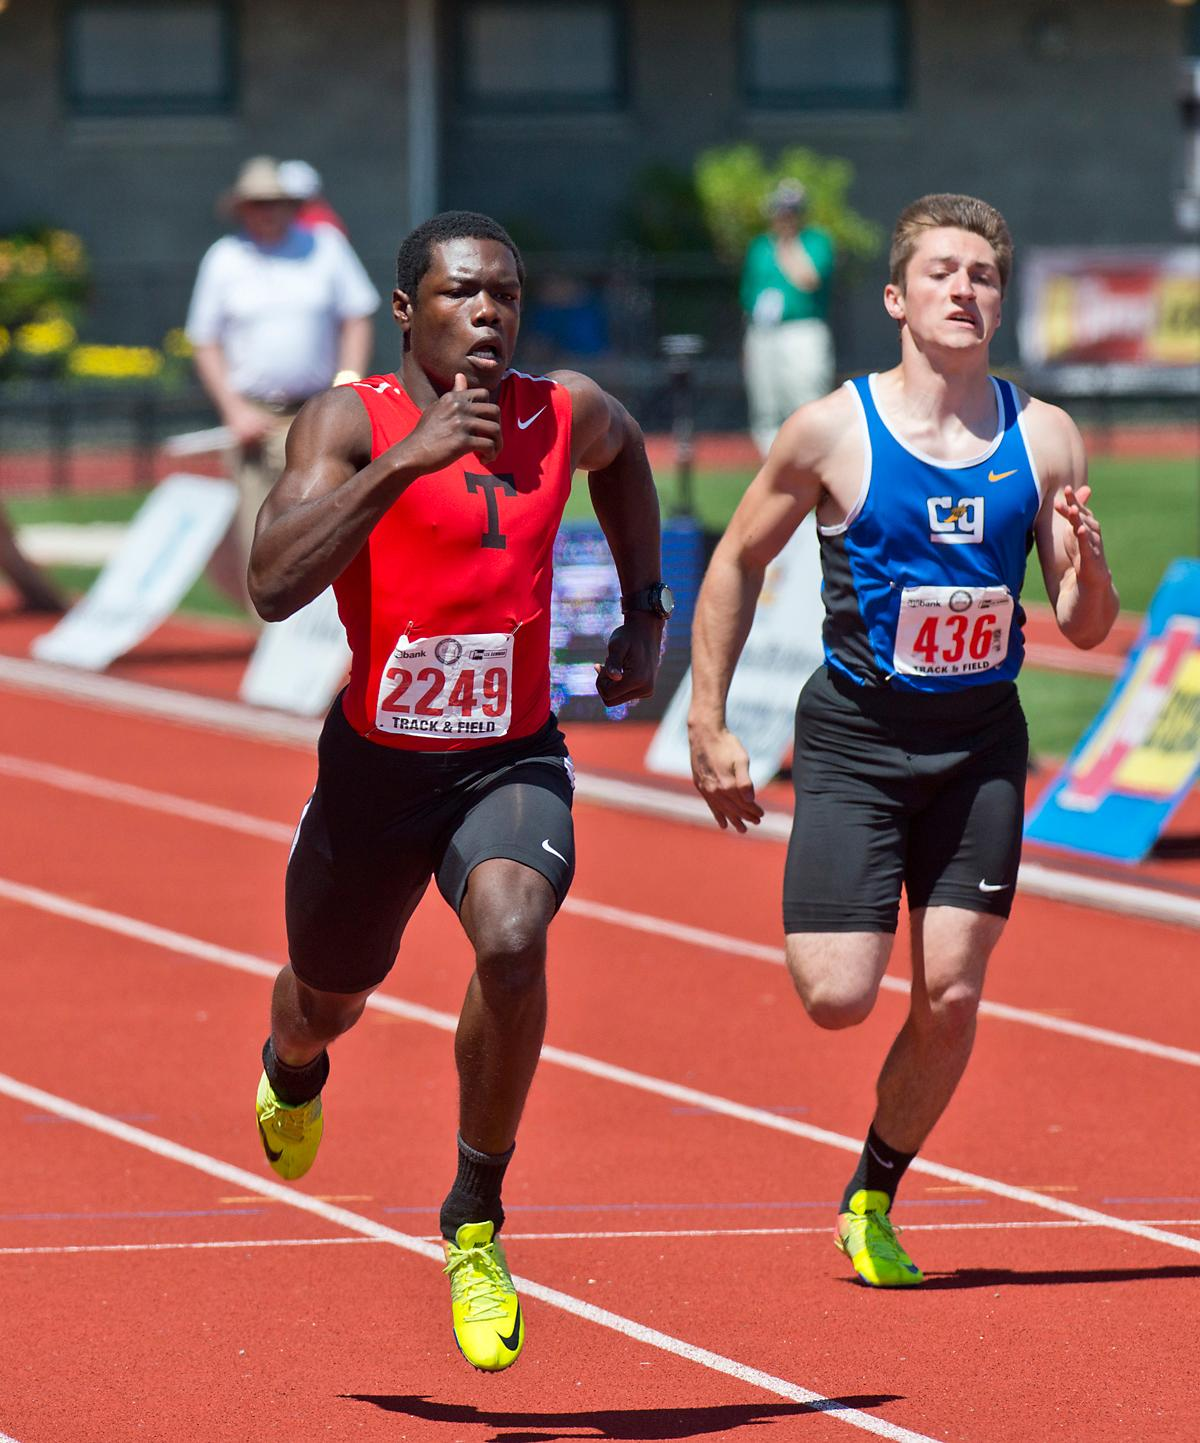 Rory Coon wins the 4A Boys 100 meter dash with a time of 10.75 at the OSAA Track Championship at Hayward Field on Saturday. Photo by Dan Morrison, Oregon News Lab